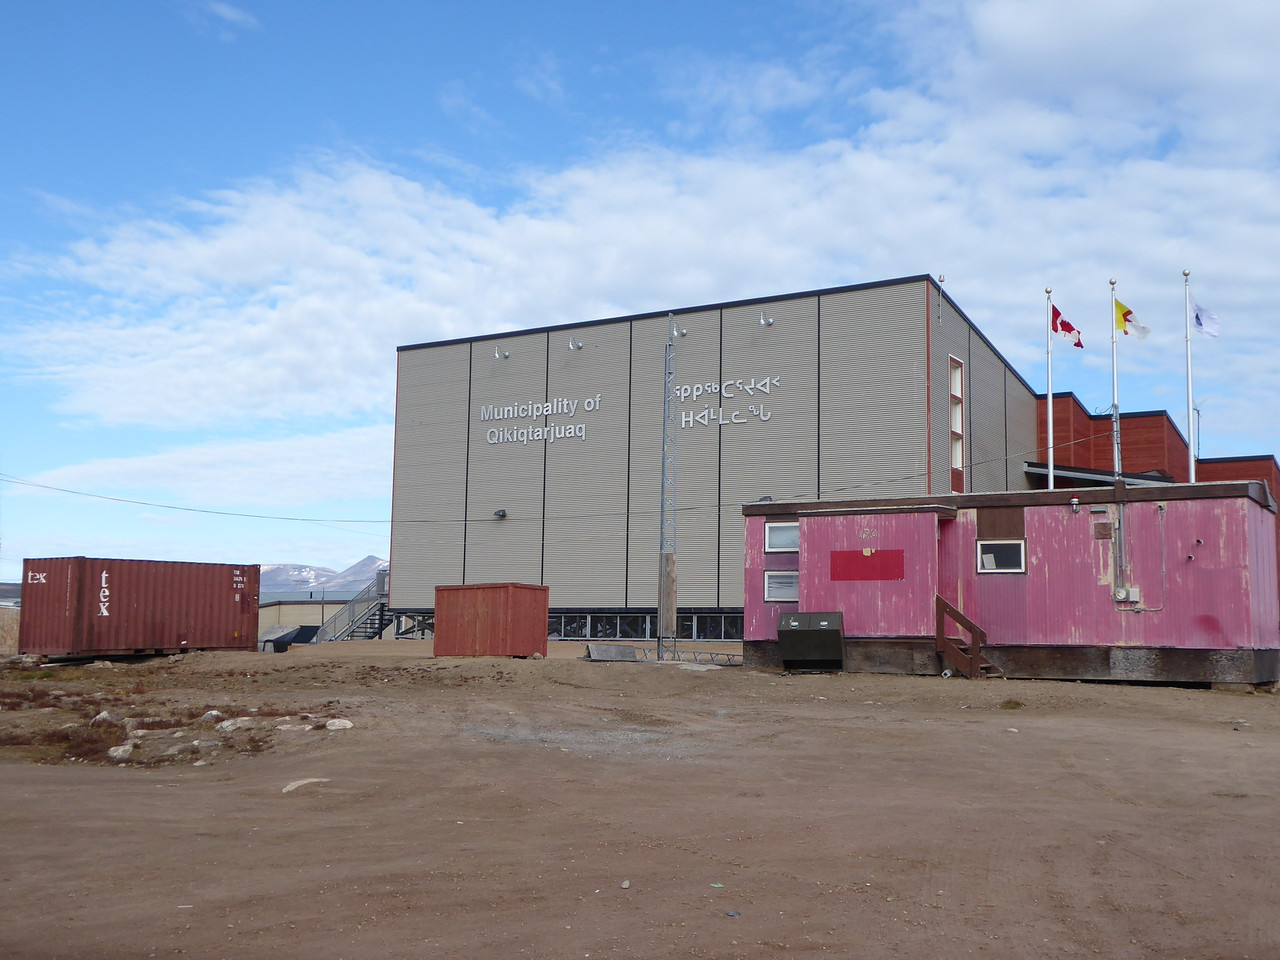 The new community hall in Qikiqtarjuaq.